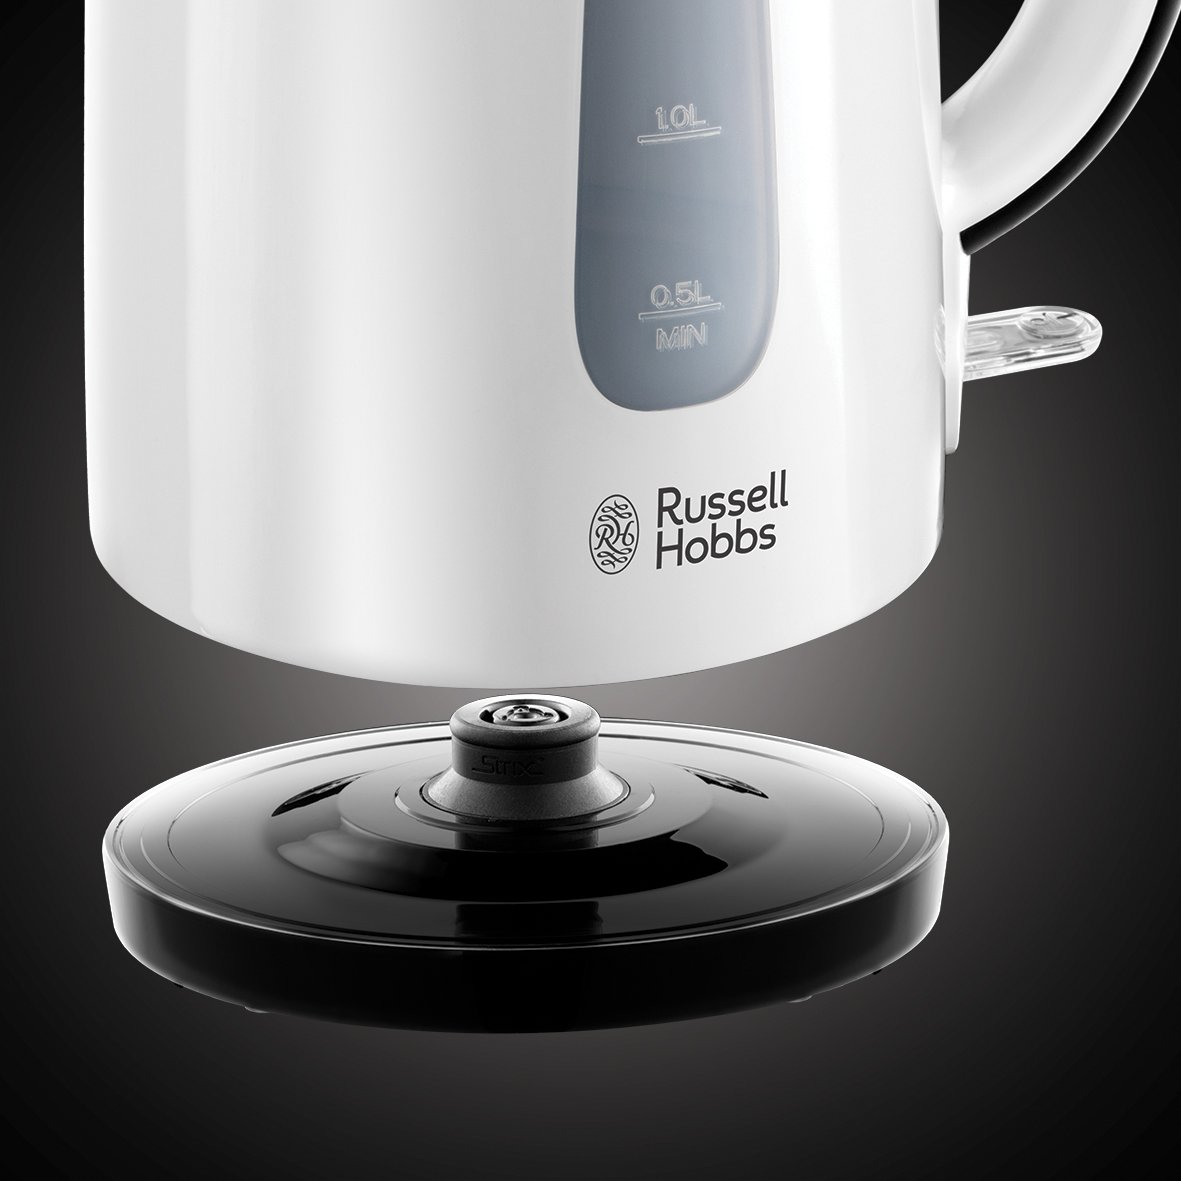 Russell Hobbs My Breakfast Two Slice Toaster with Kettle - White and Black